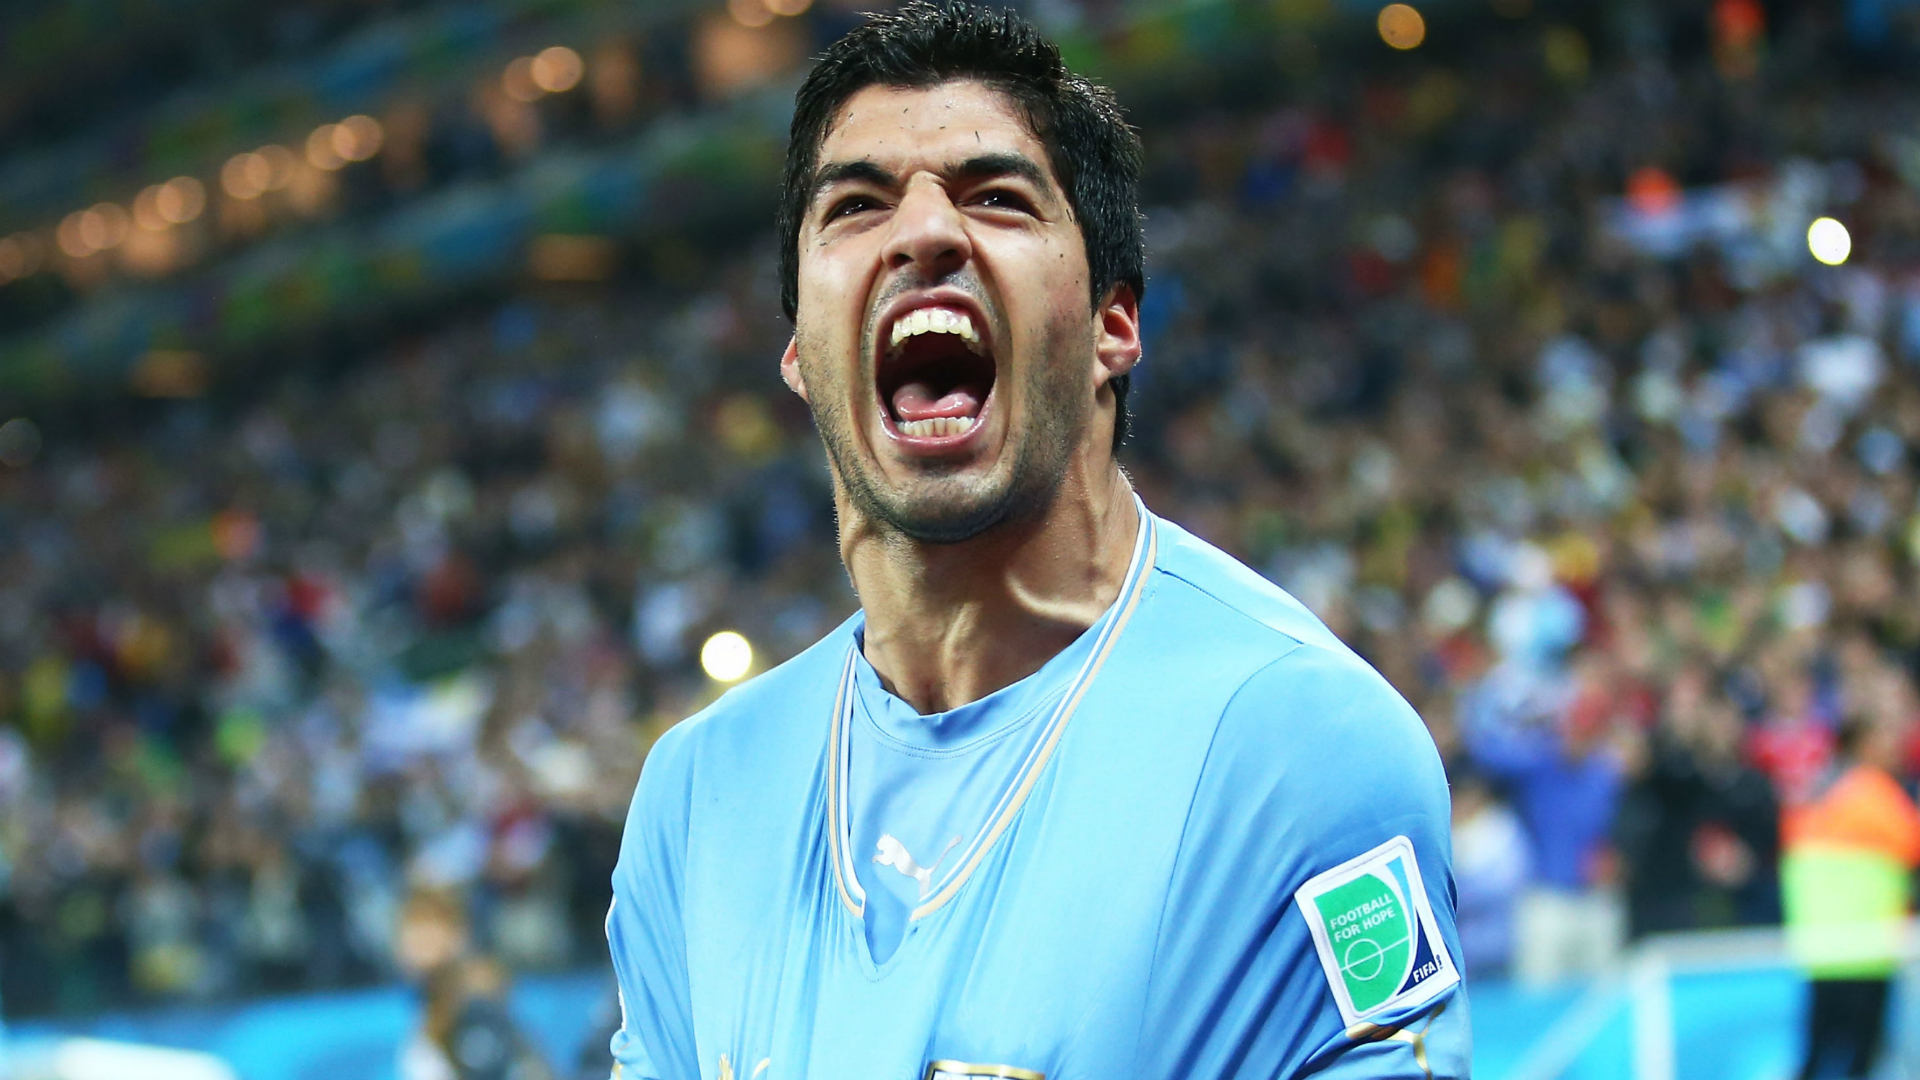 Luis Suarez Football Soccer Player Free Hd Background Mobile Desktop Download Jpg